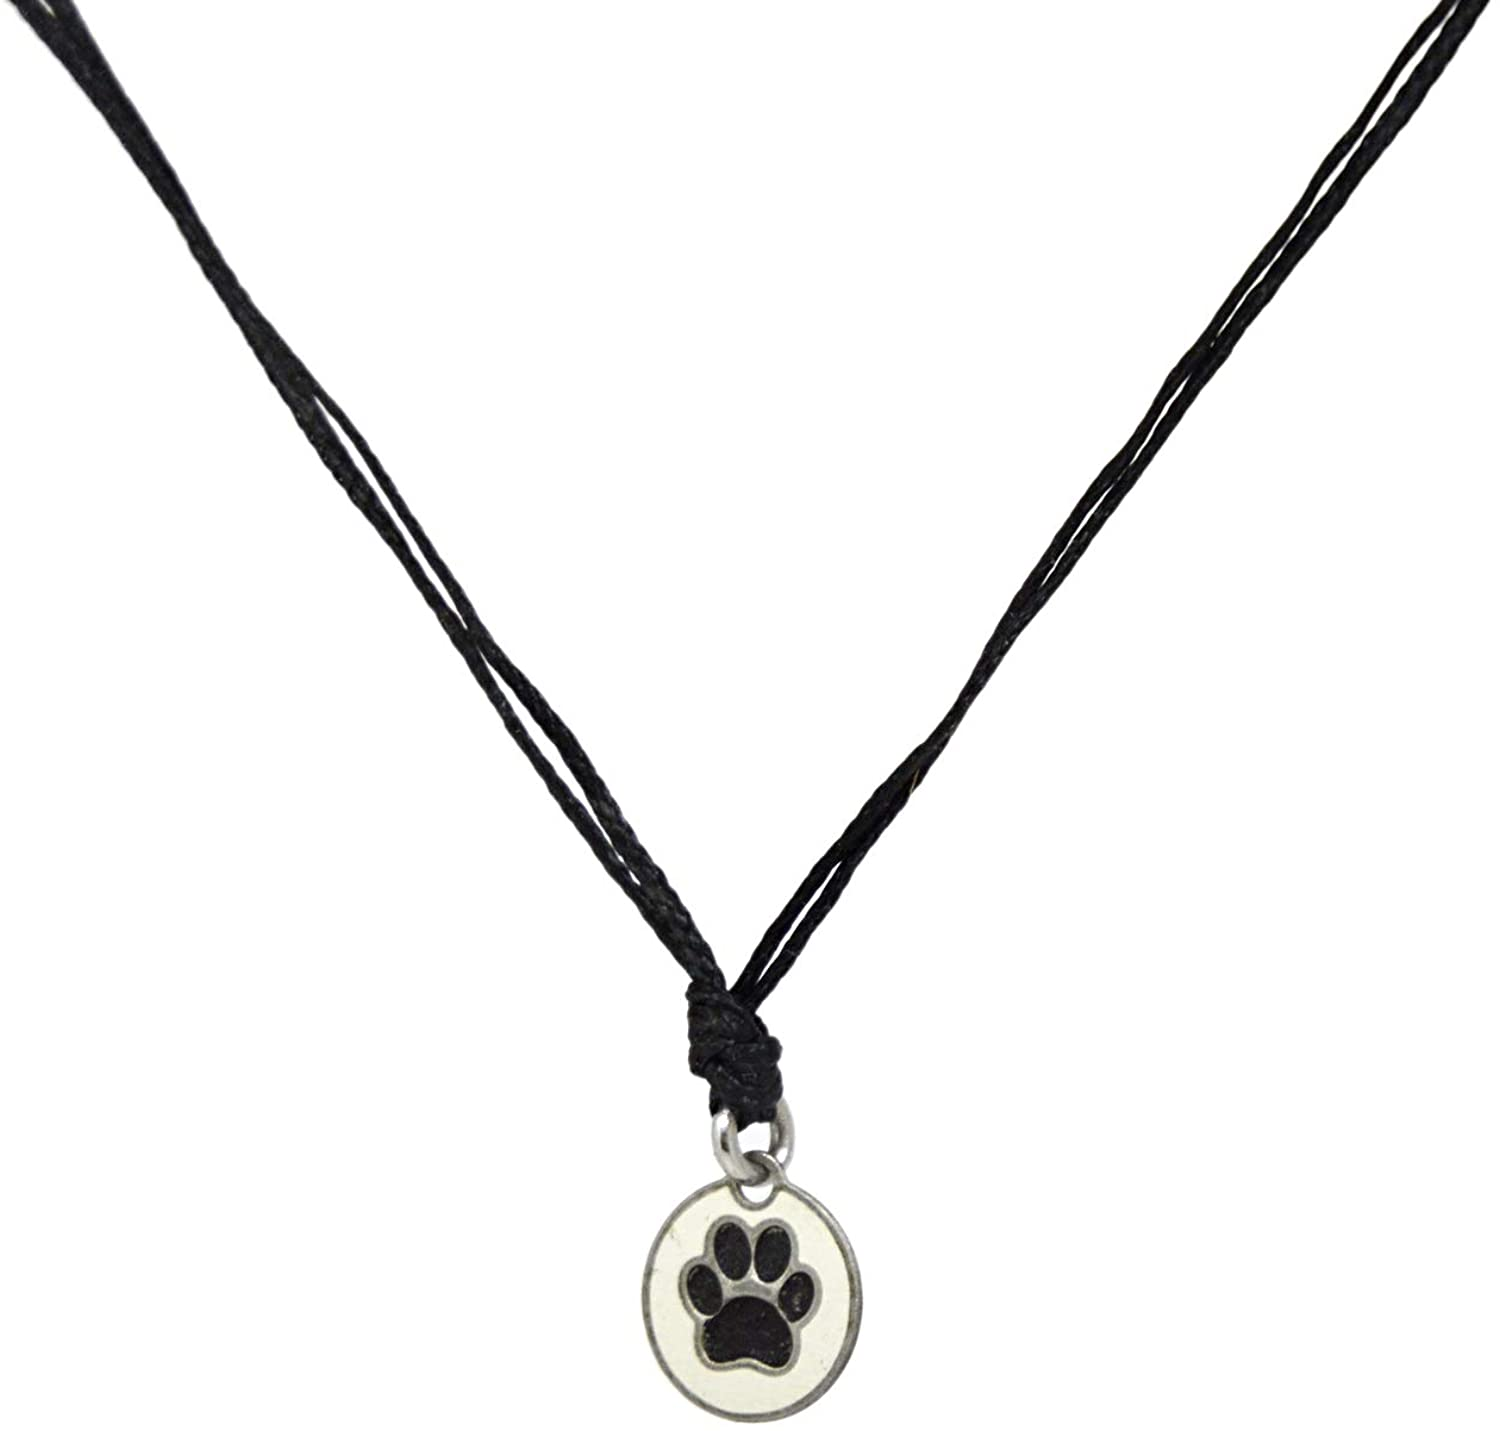 Black Choker Necklace with Stainless Steel Pet Lover Charm Necklace on Double Black Strand for Women - Light, Elegant, Hypoallergenic Jewelry